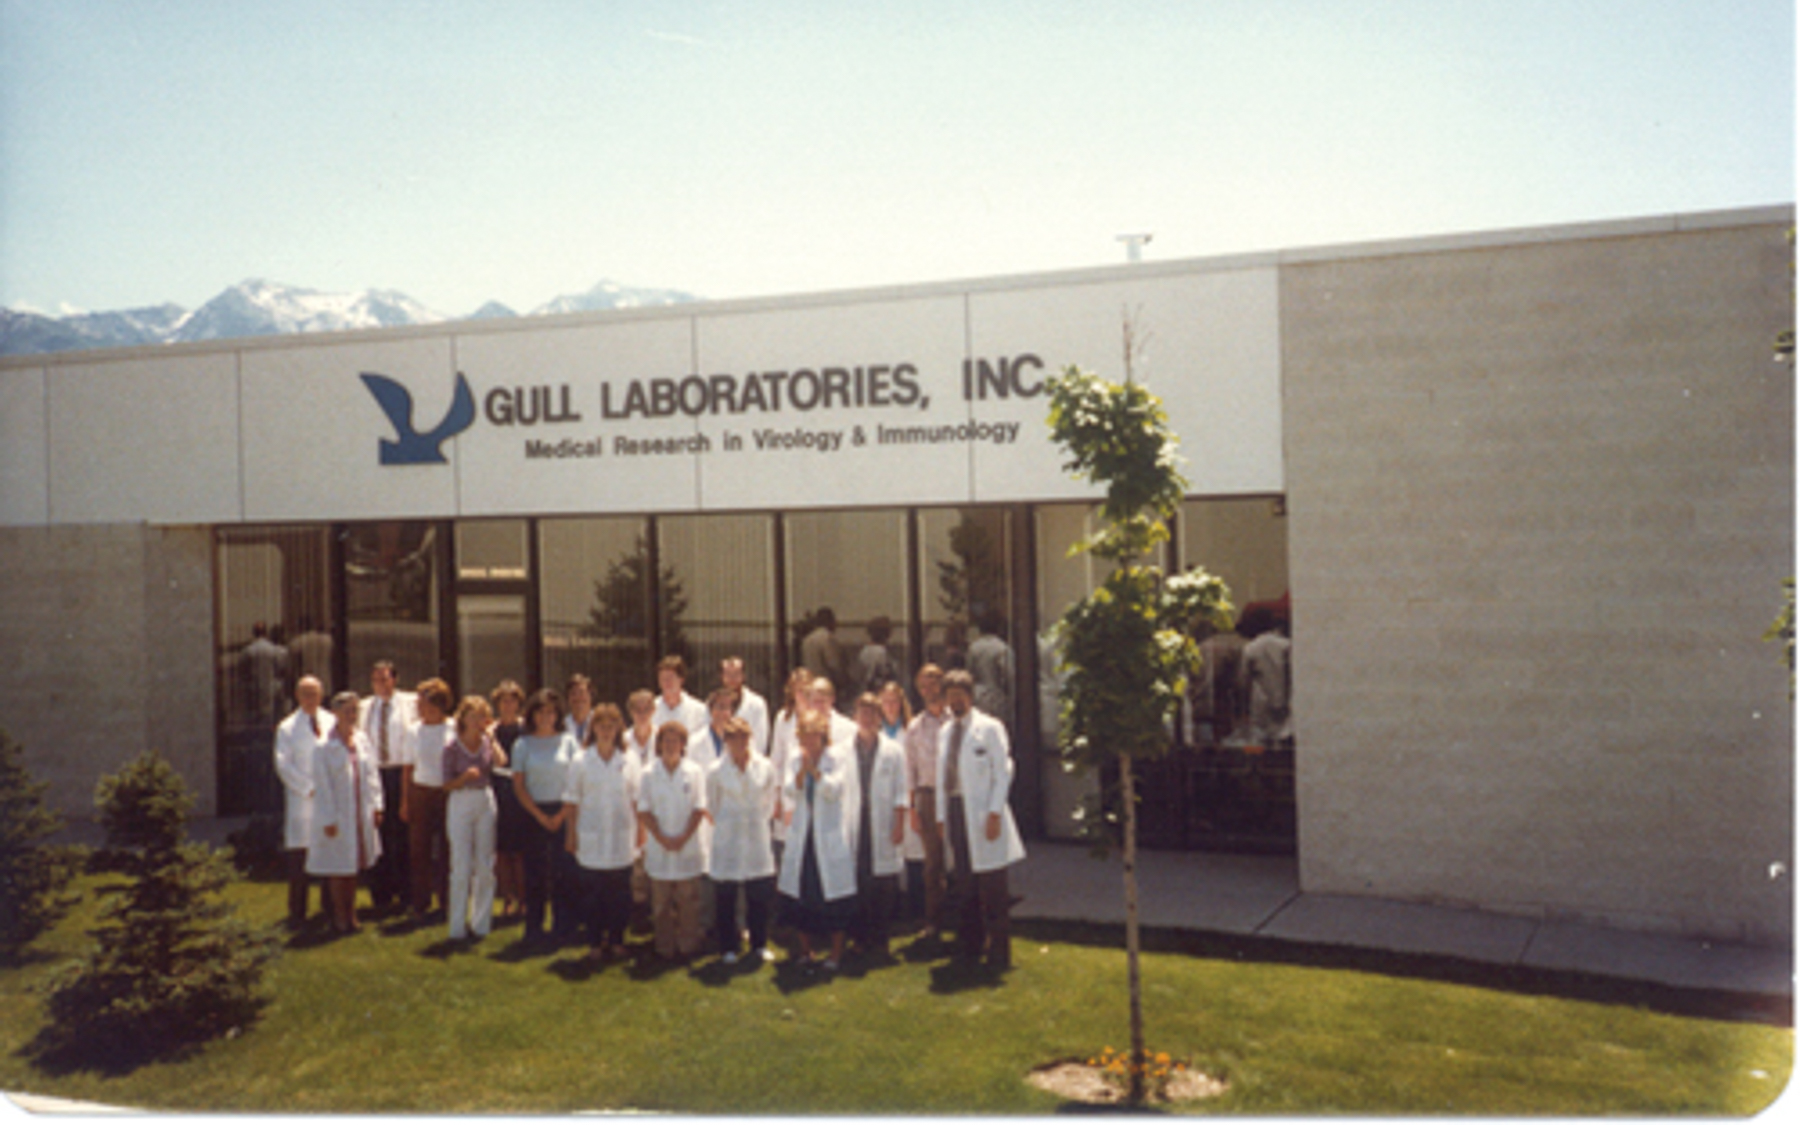 Dr. Wentz and his staff at Gull Laboratories